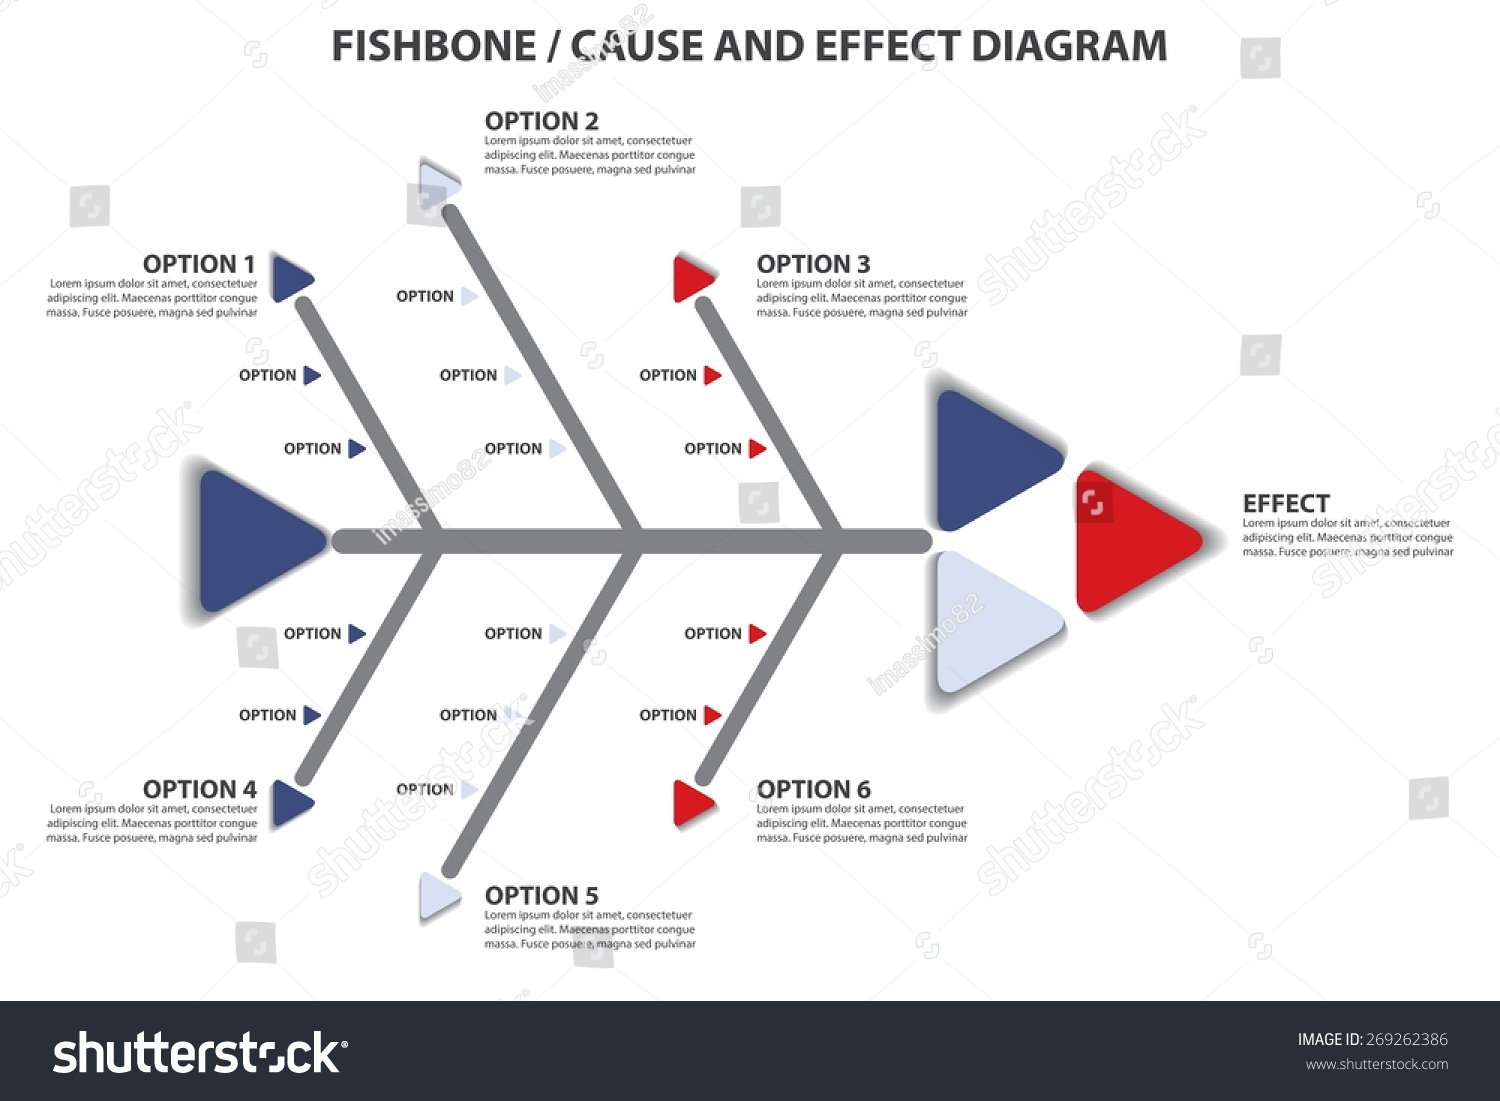 Fishbone Cause Effect Diagram Vector Infographic Stock